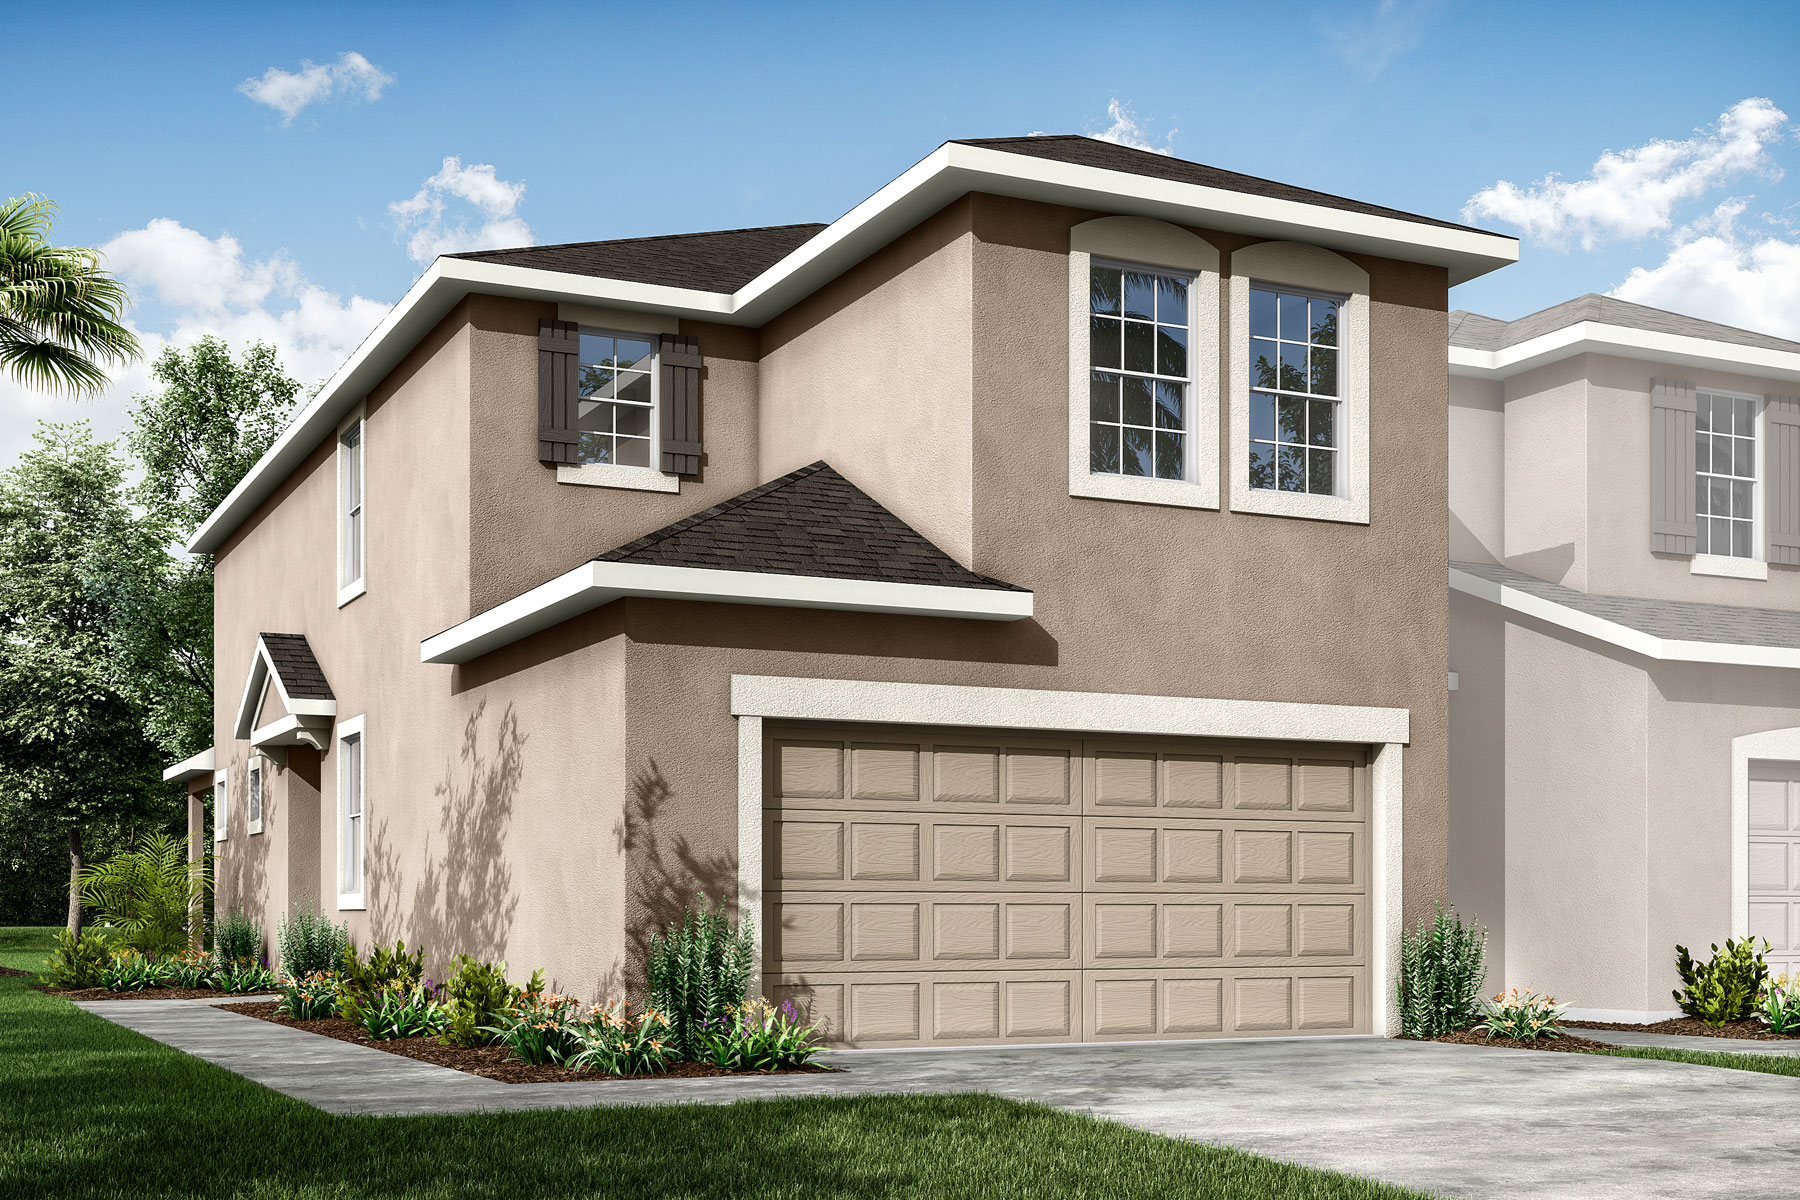 Seaside II End Plan tpa_harmony_seasideII_spanish at Harmony at Lakewood Ranch in Lakewood Ranch Florida by Mattamy Homes